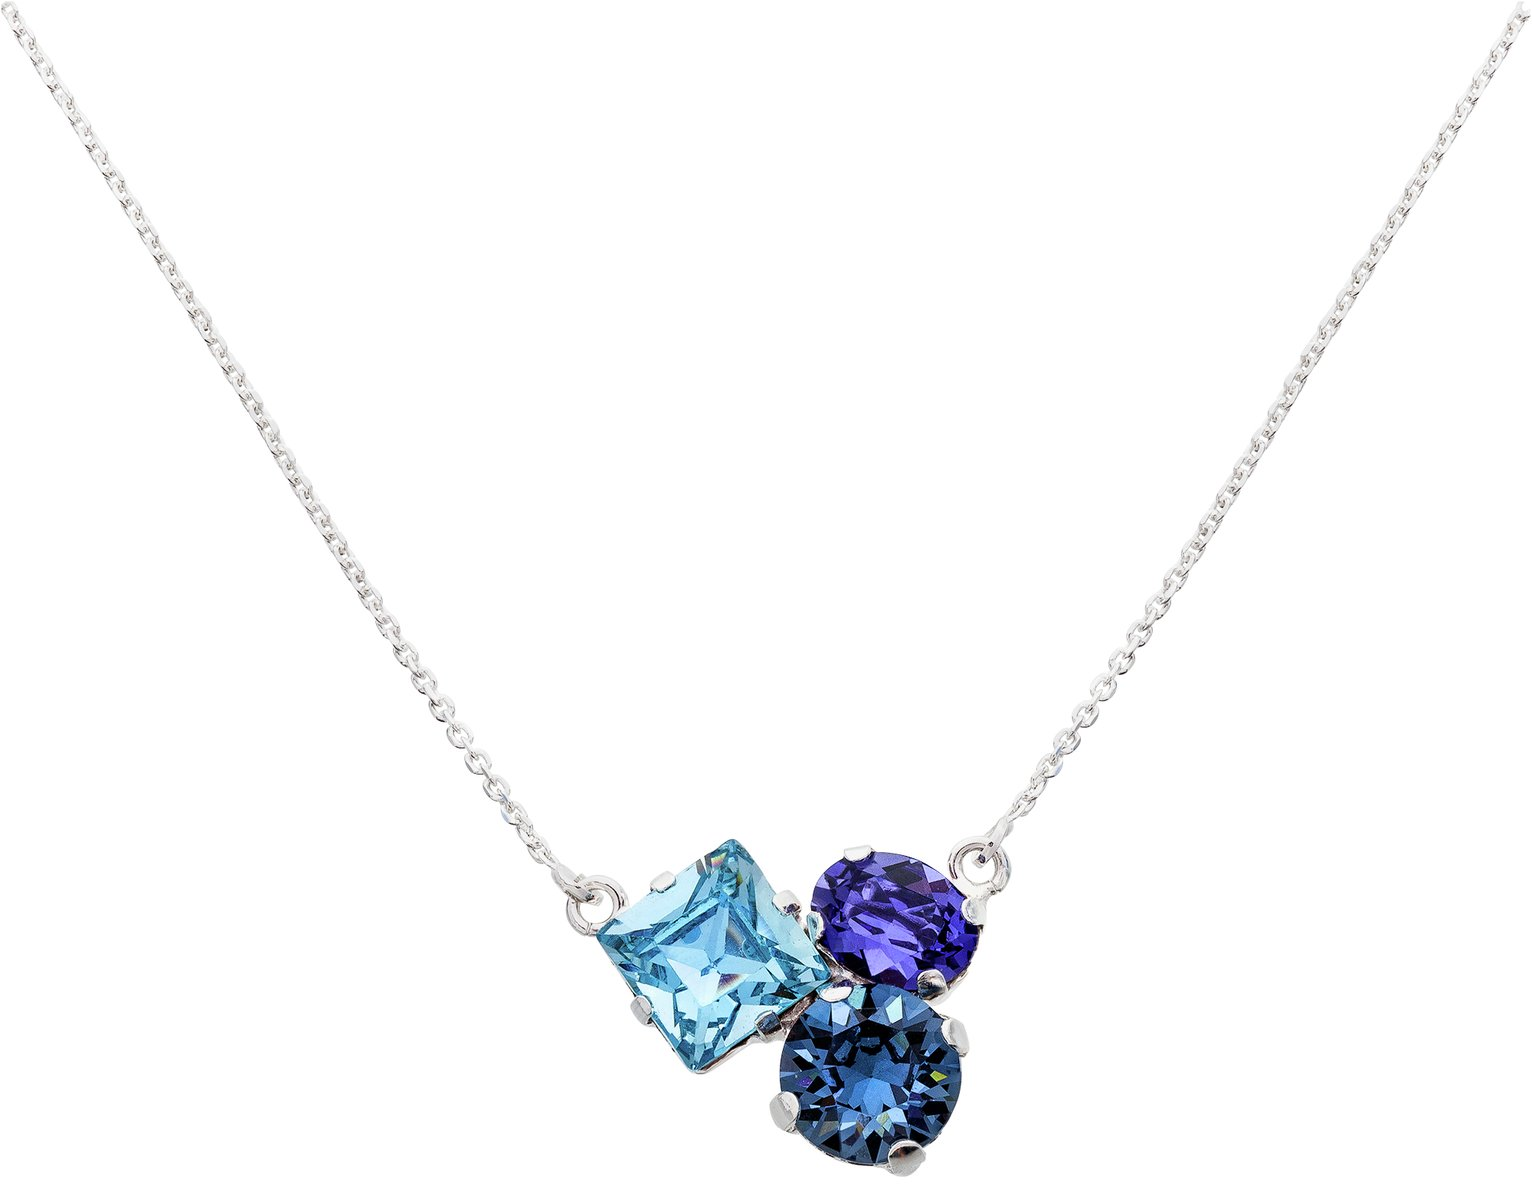 Image of Davvero Sterling Silver Blue Swarovski Crystal Necklace